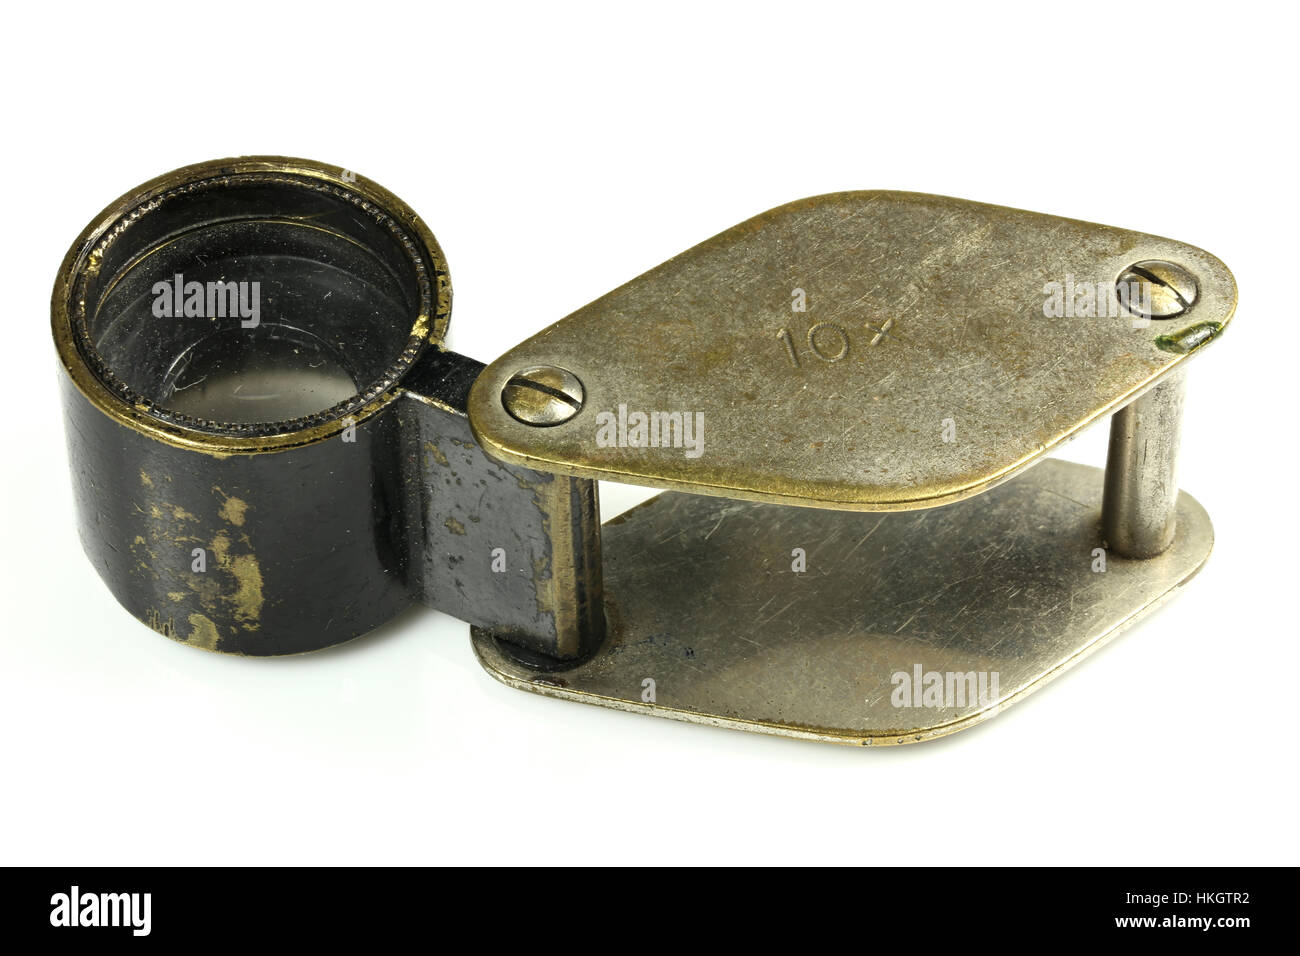 vintage folding magnifier with 10x magnification isolated on white background - Stock Image